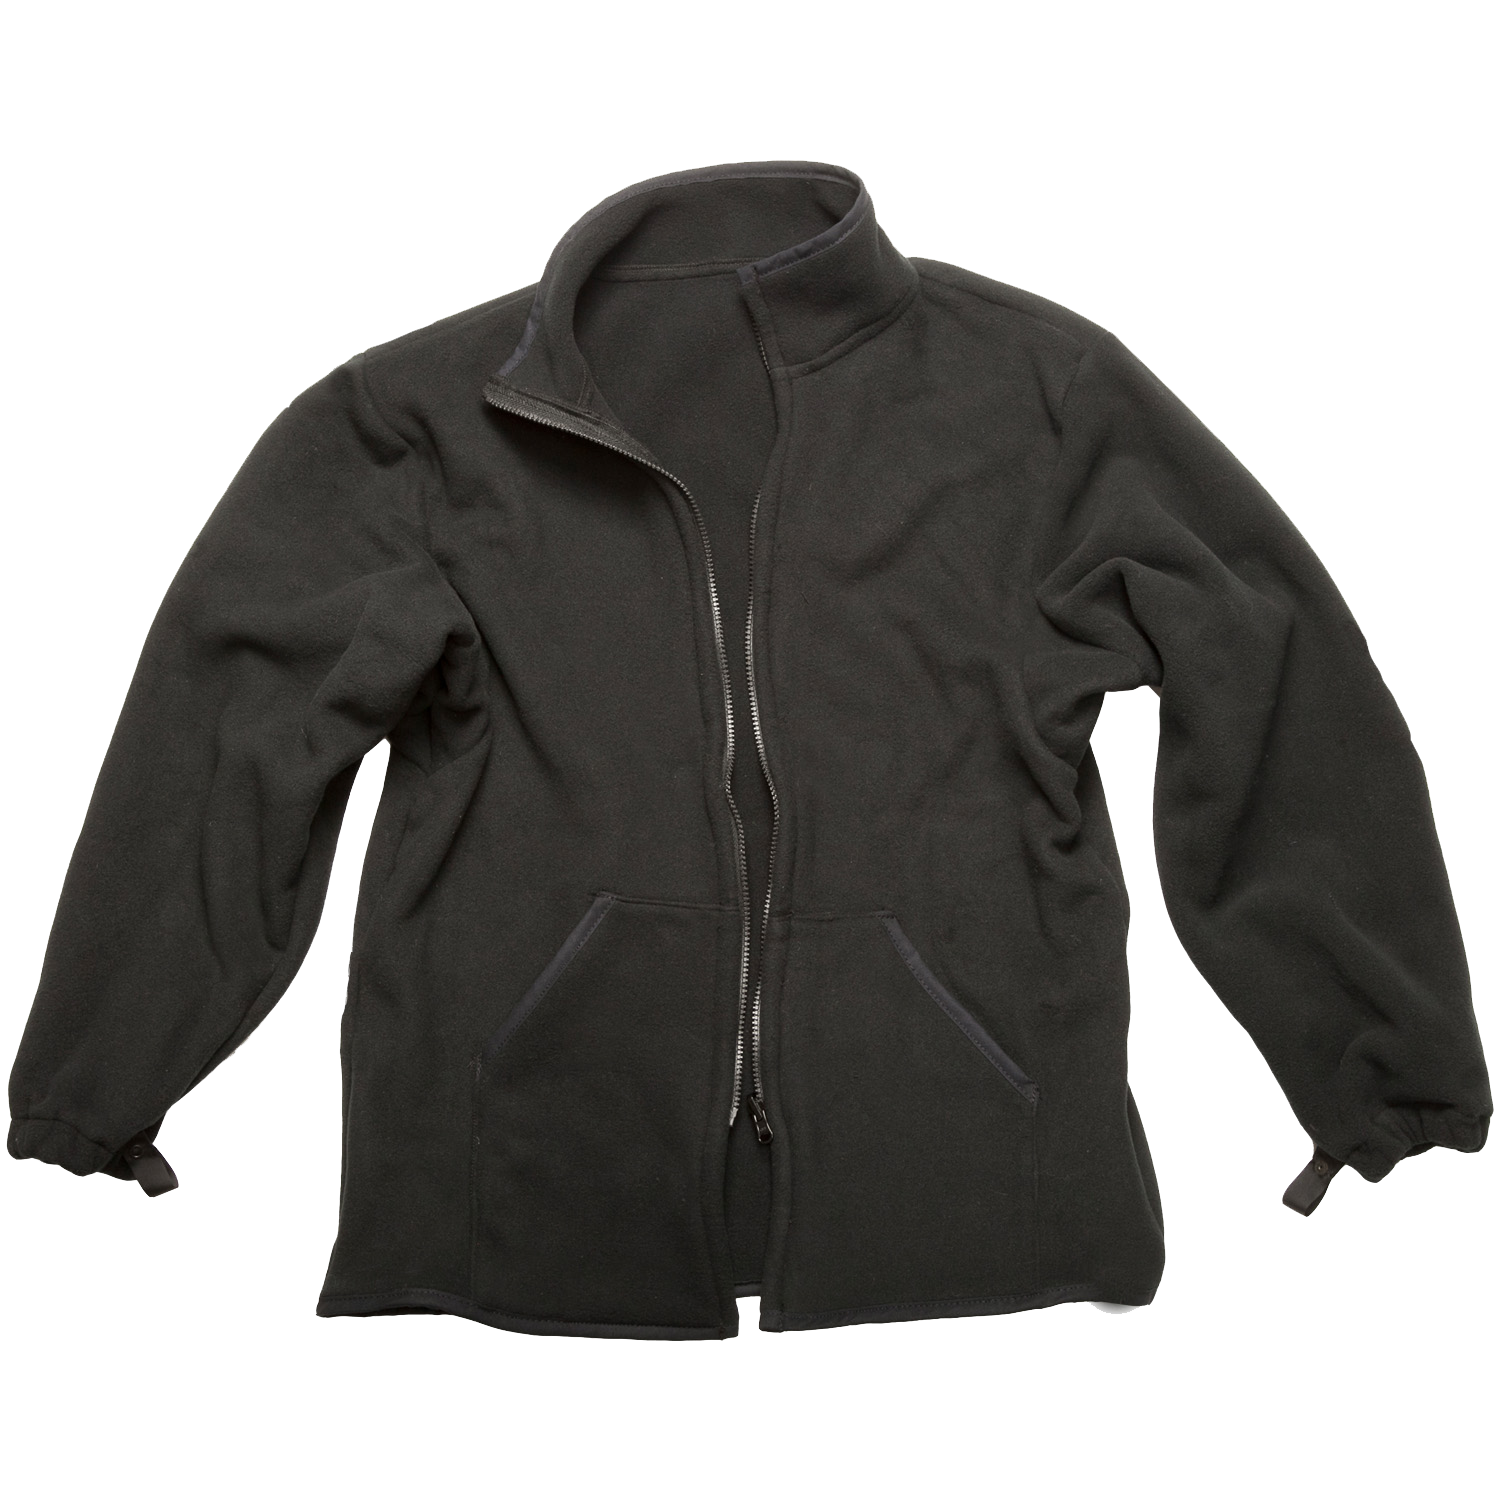 FrontLine EMS™ 206 Series Jacket